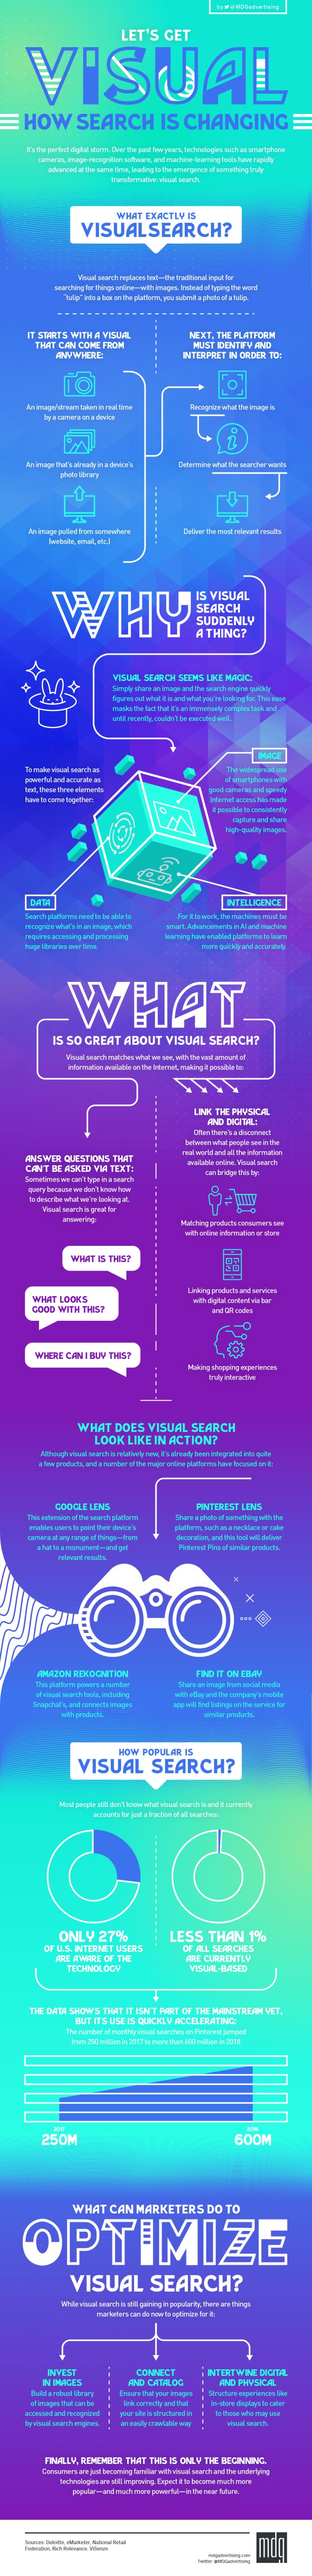 Visual Search Infographic